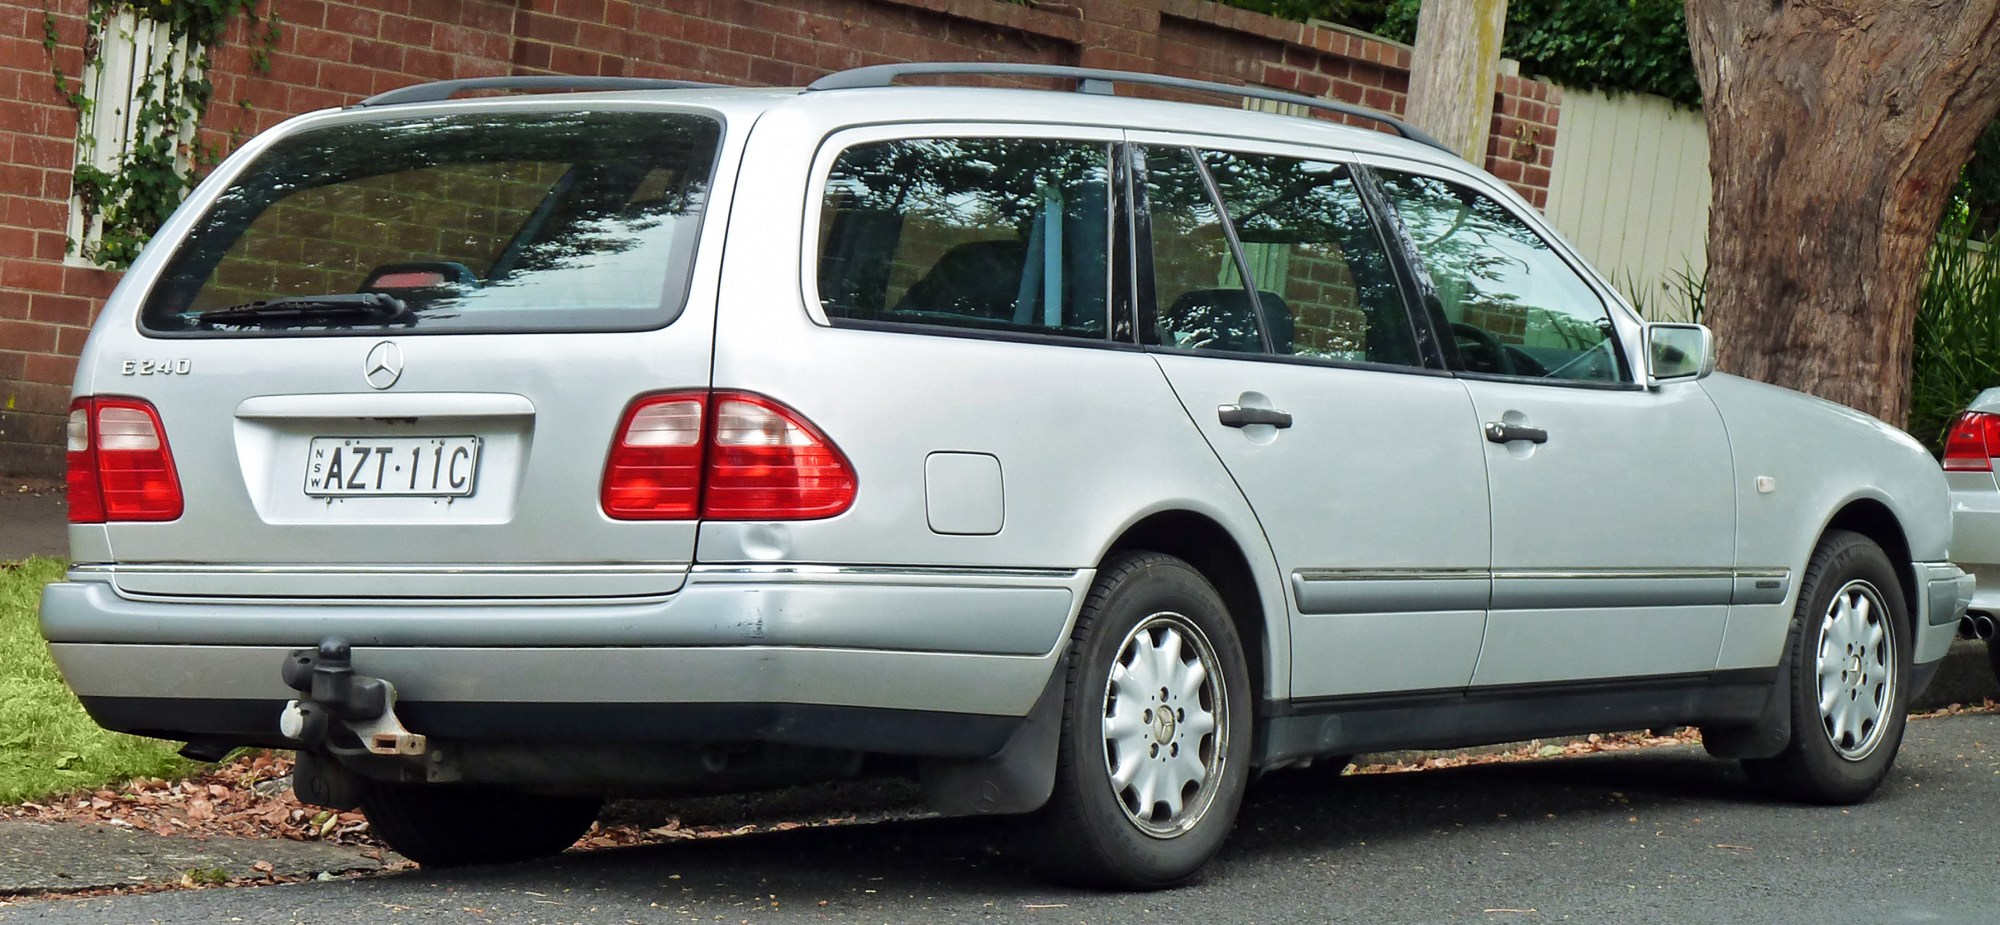 hight resolution of file 1997 mercedes benz e 240 s 210 elegance station wagon